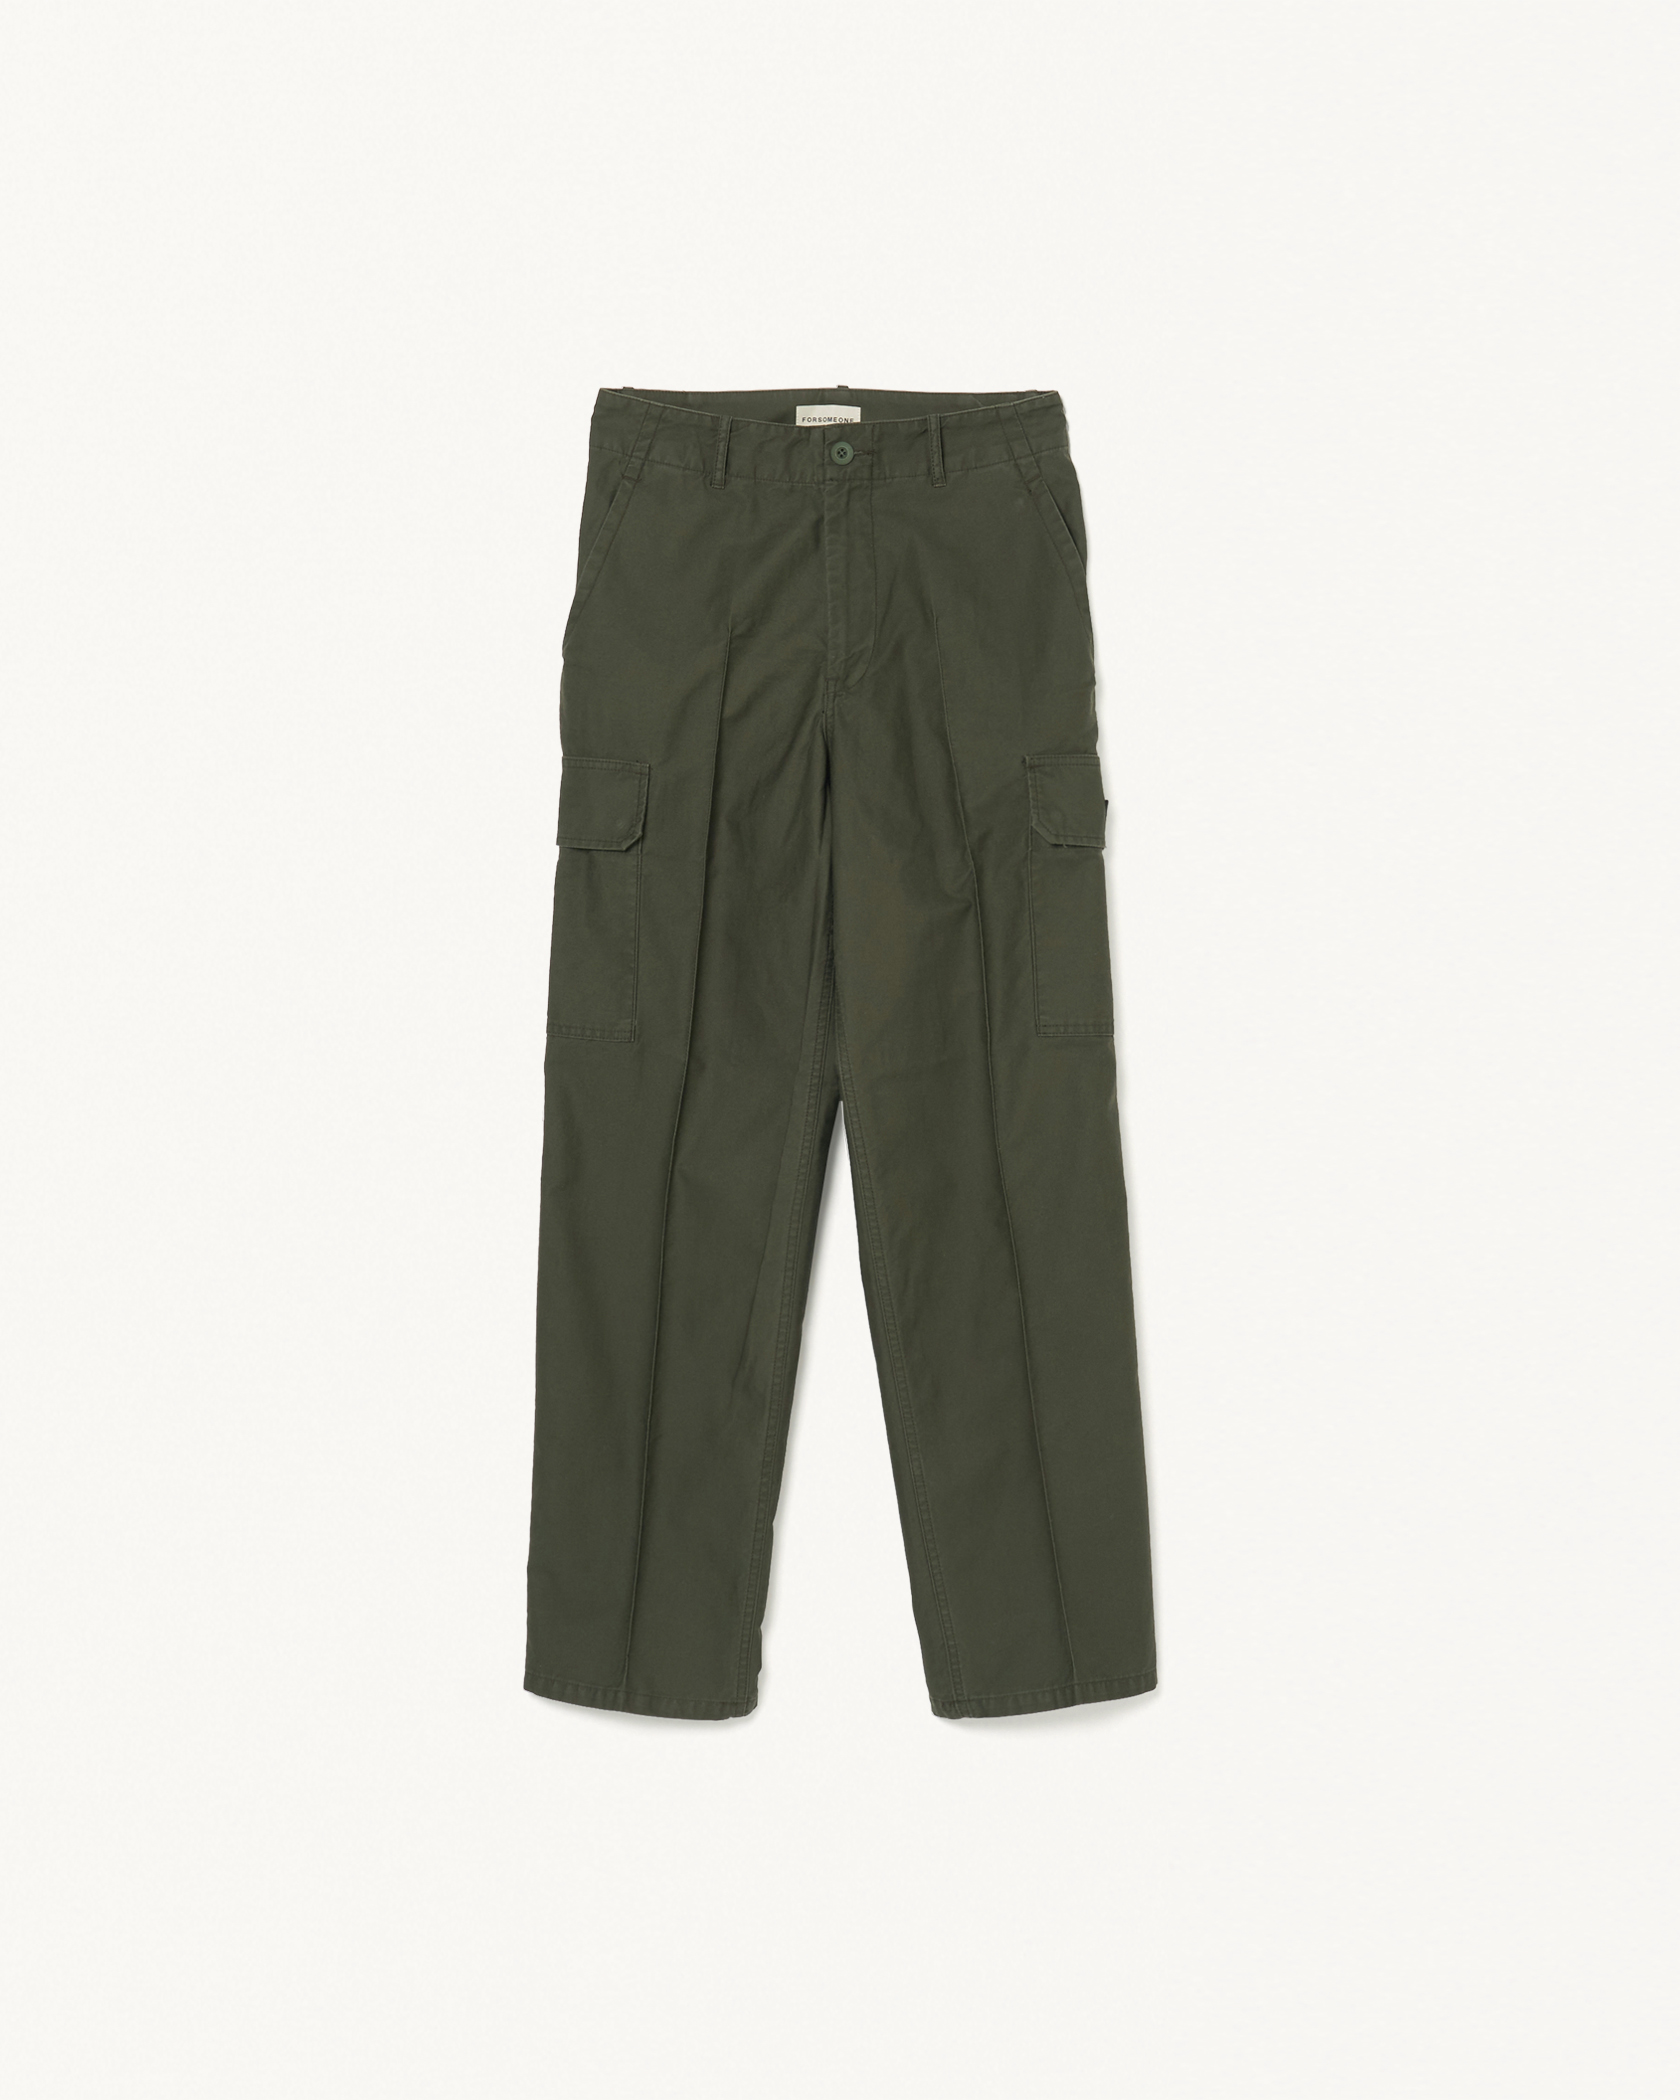 CARGO TROUSERS 詳細画像 Olive 5